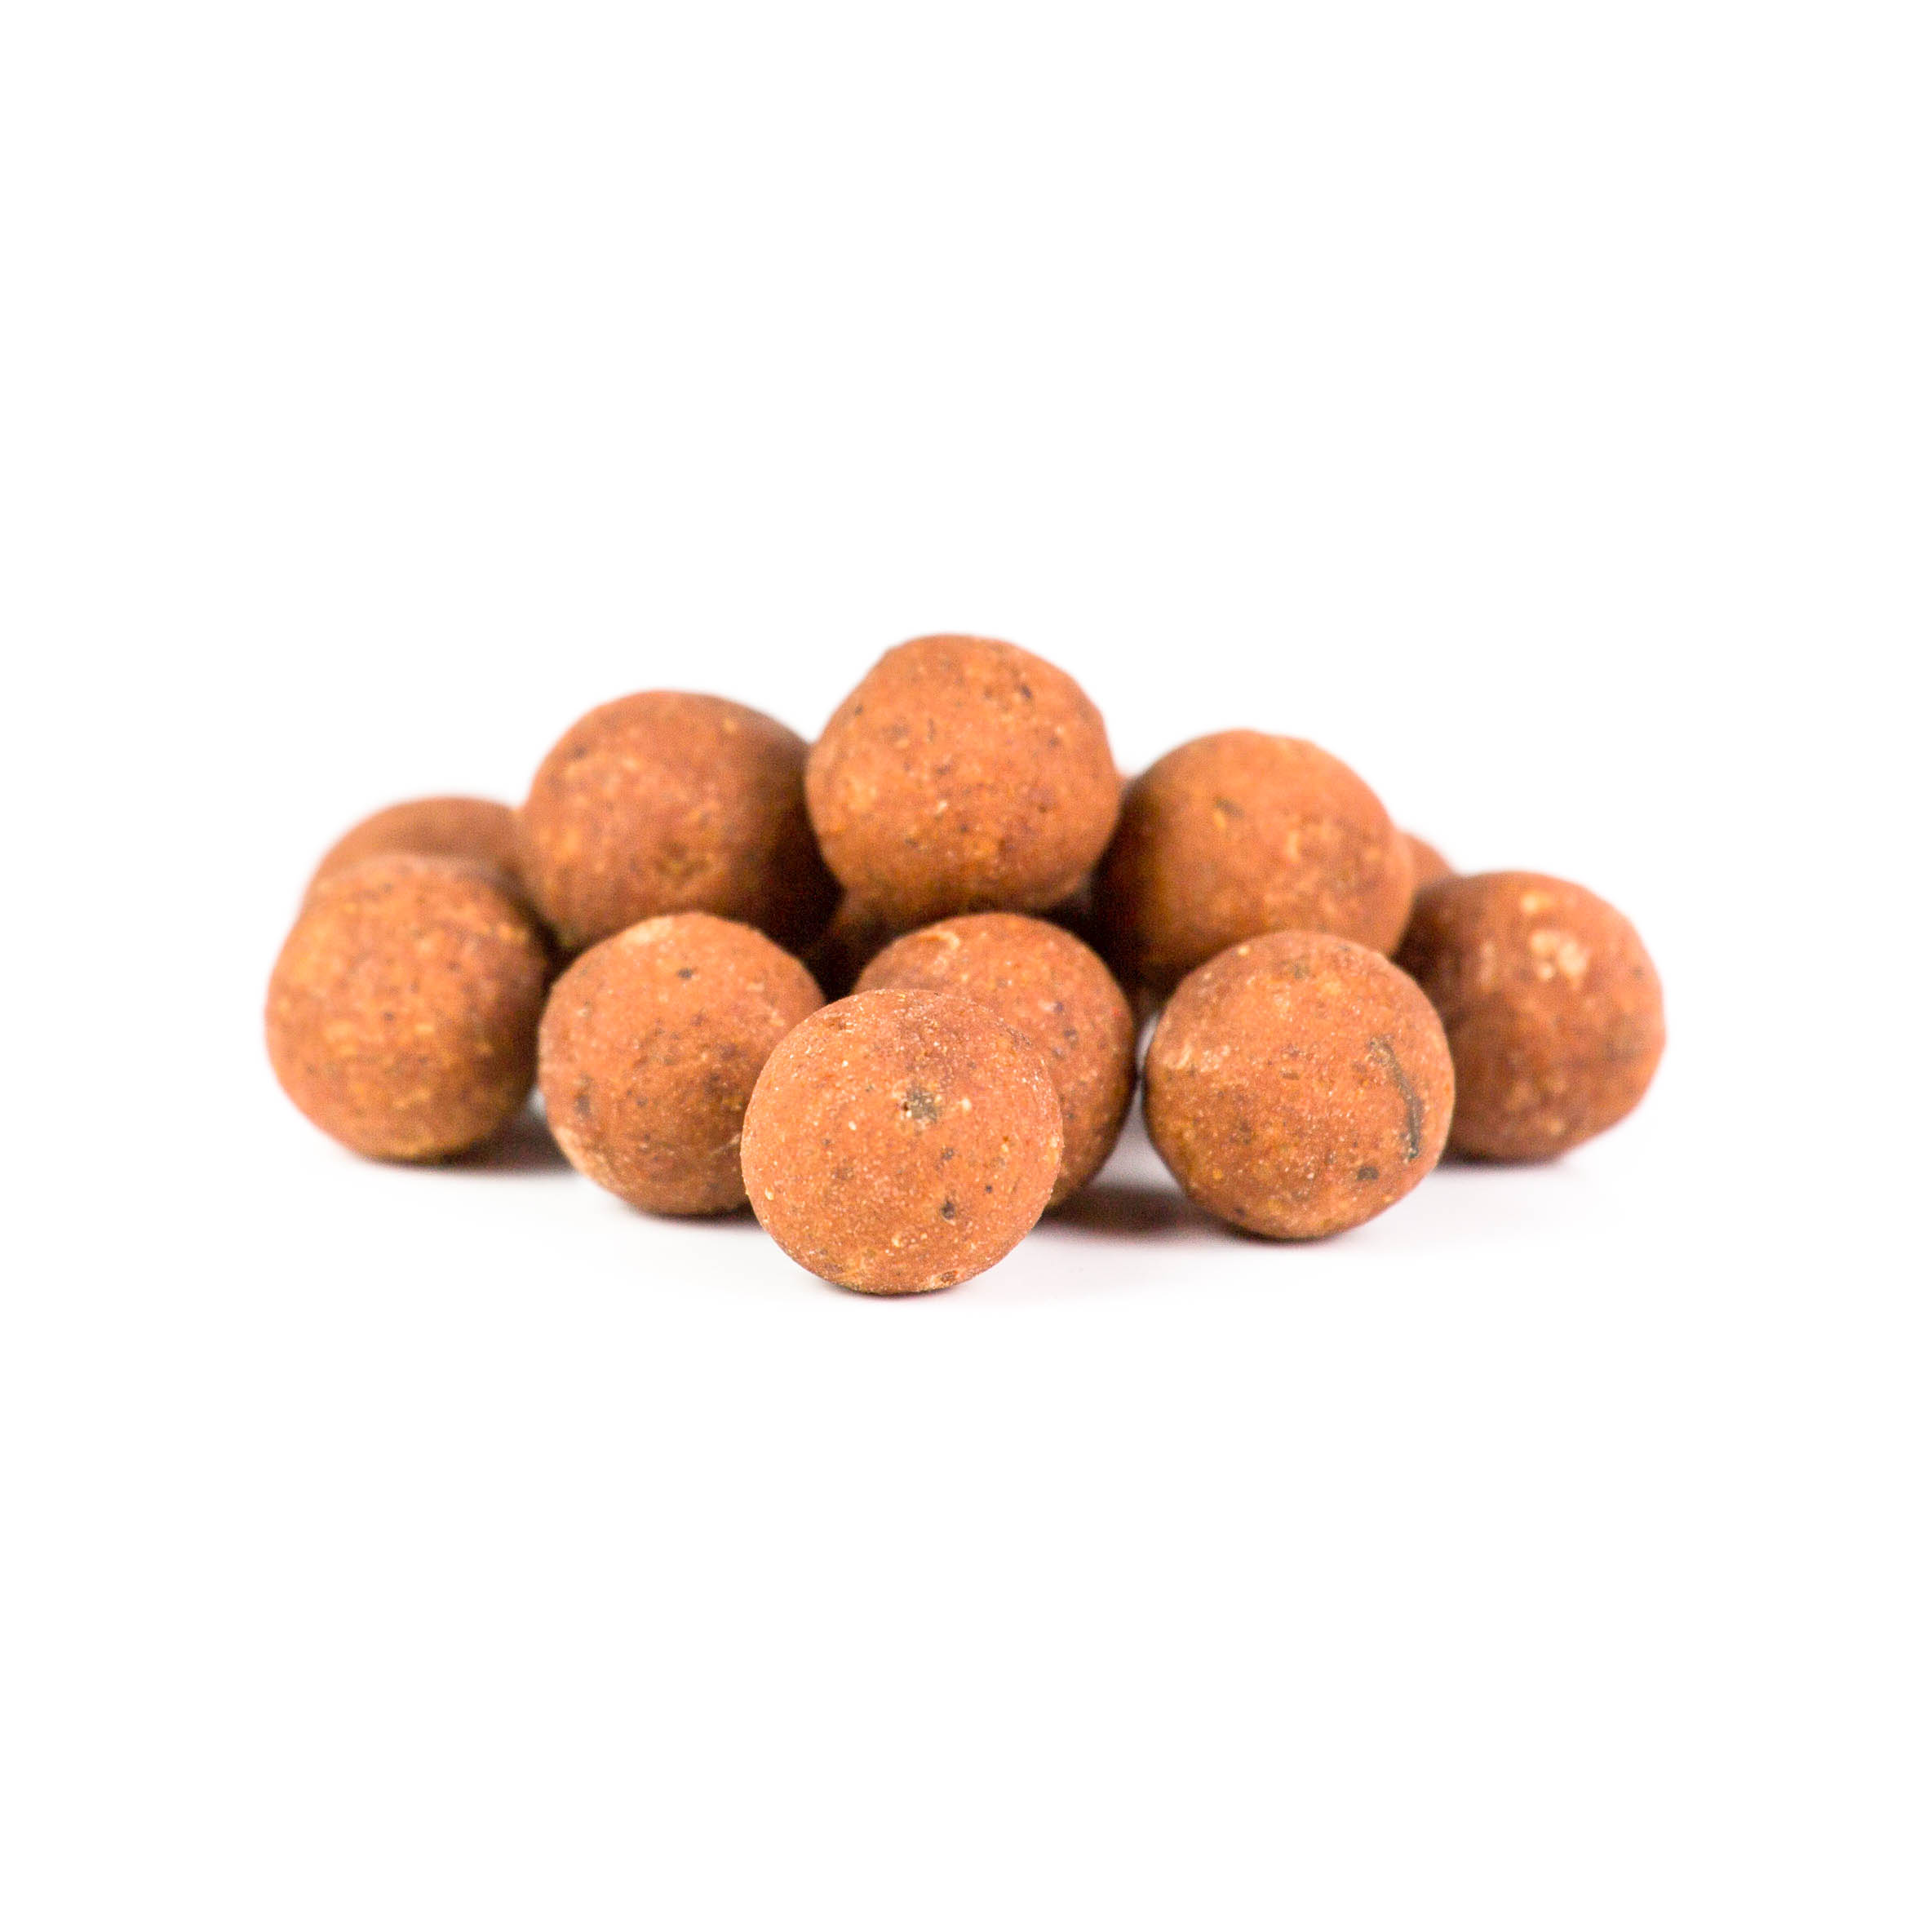 Boilie Mikbaits Mirabel WS2 Spice 12mm 250g